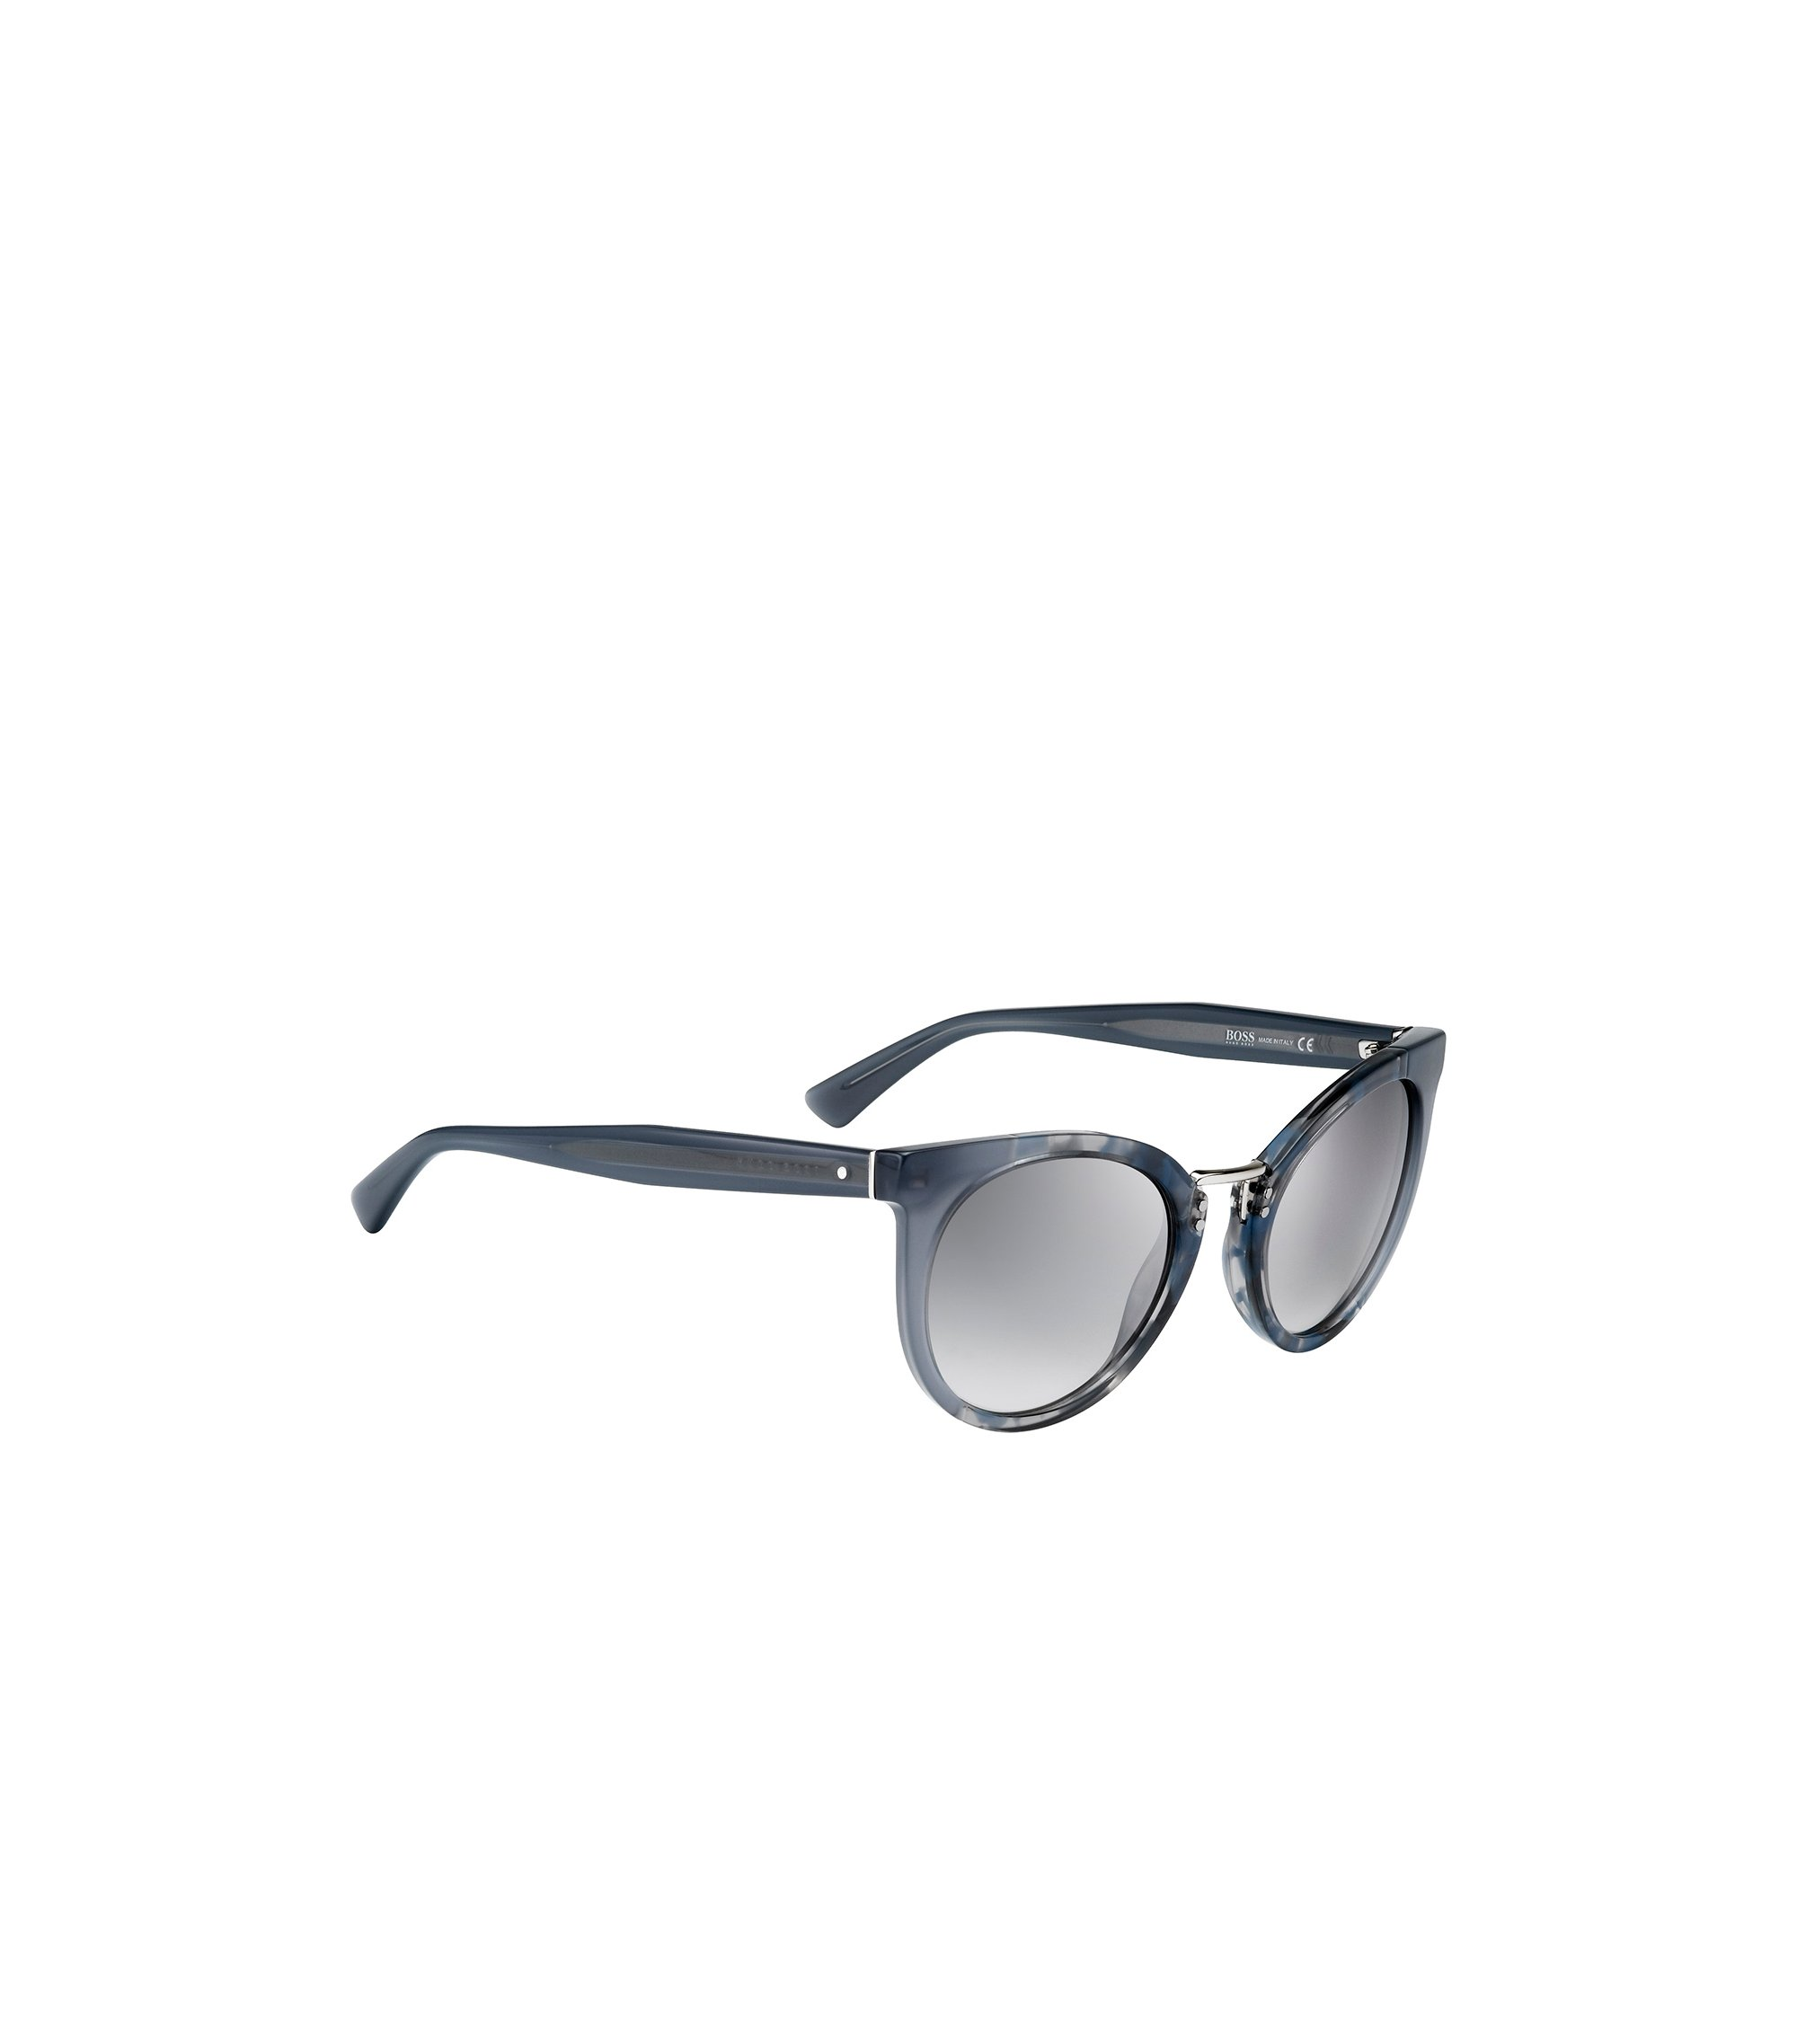 Gray Lens Rounded Cateye Havana Sunglasses | BOSS 0793S, Assorted-Pre-Pack